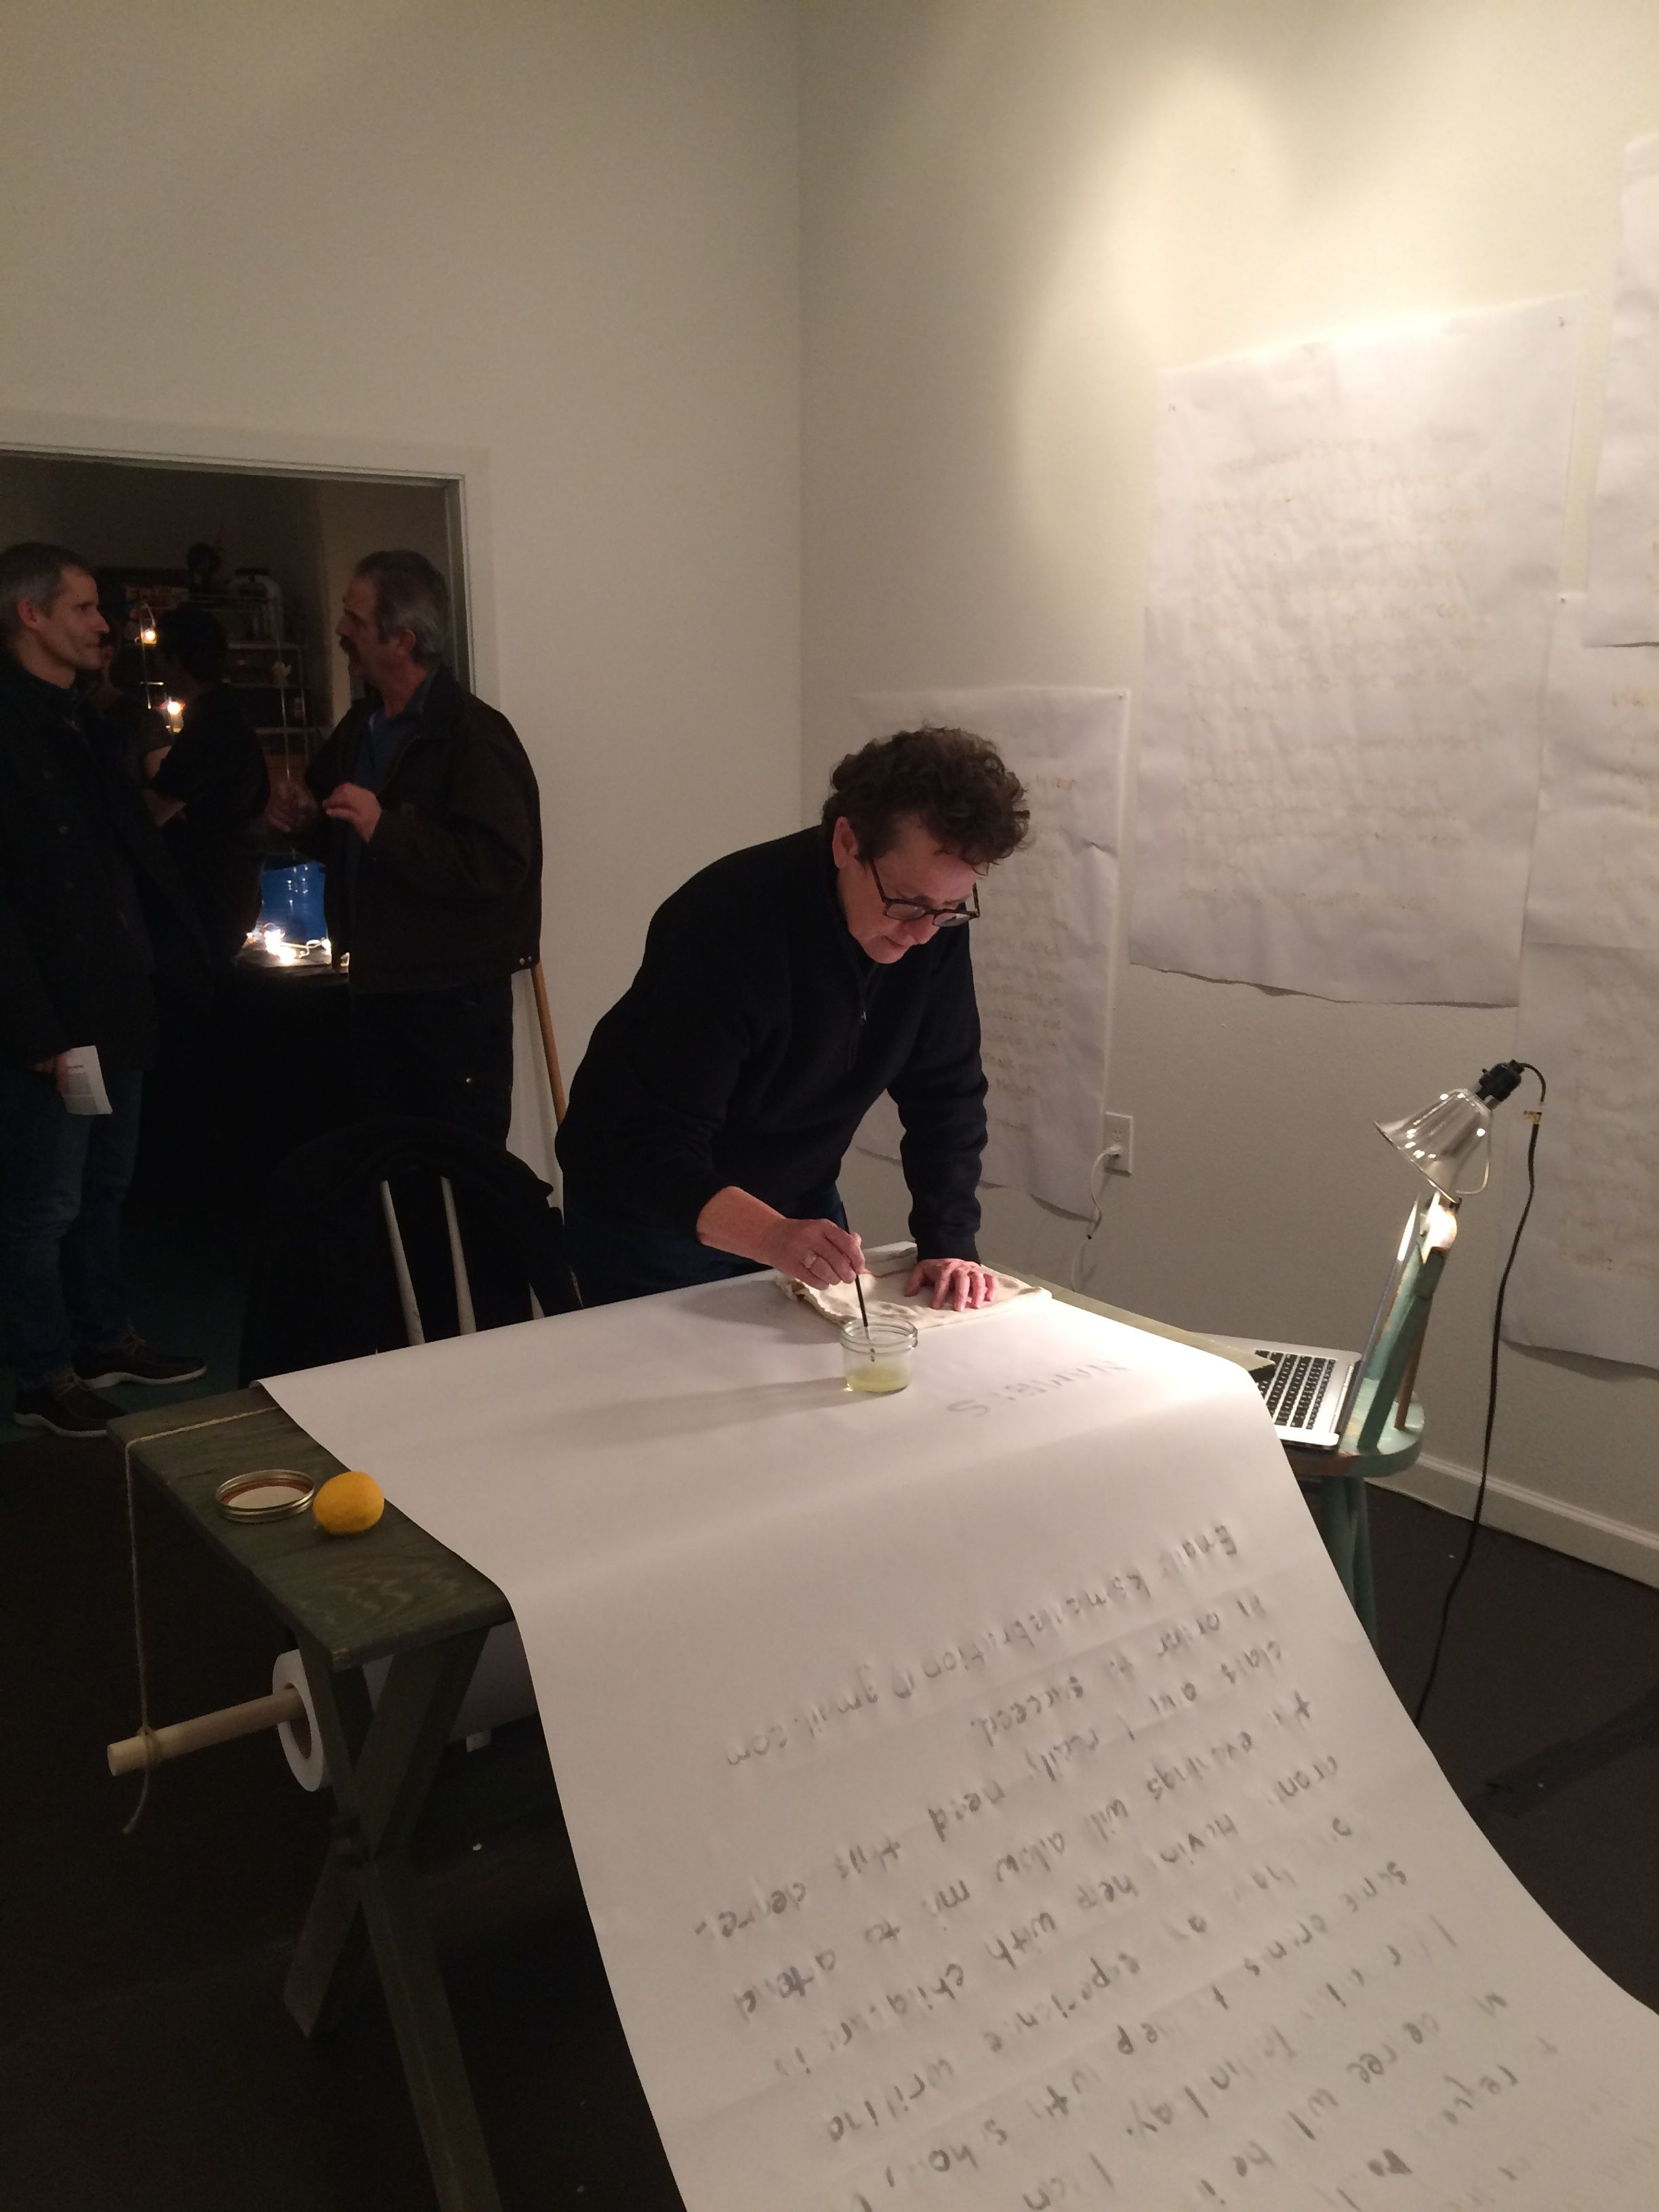 Installation reception - participant writing